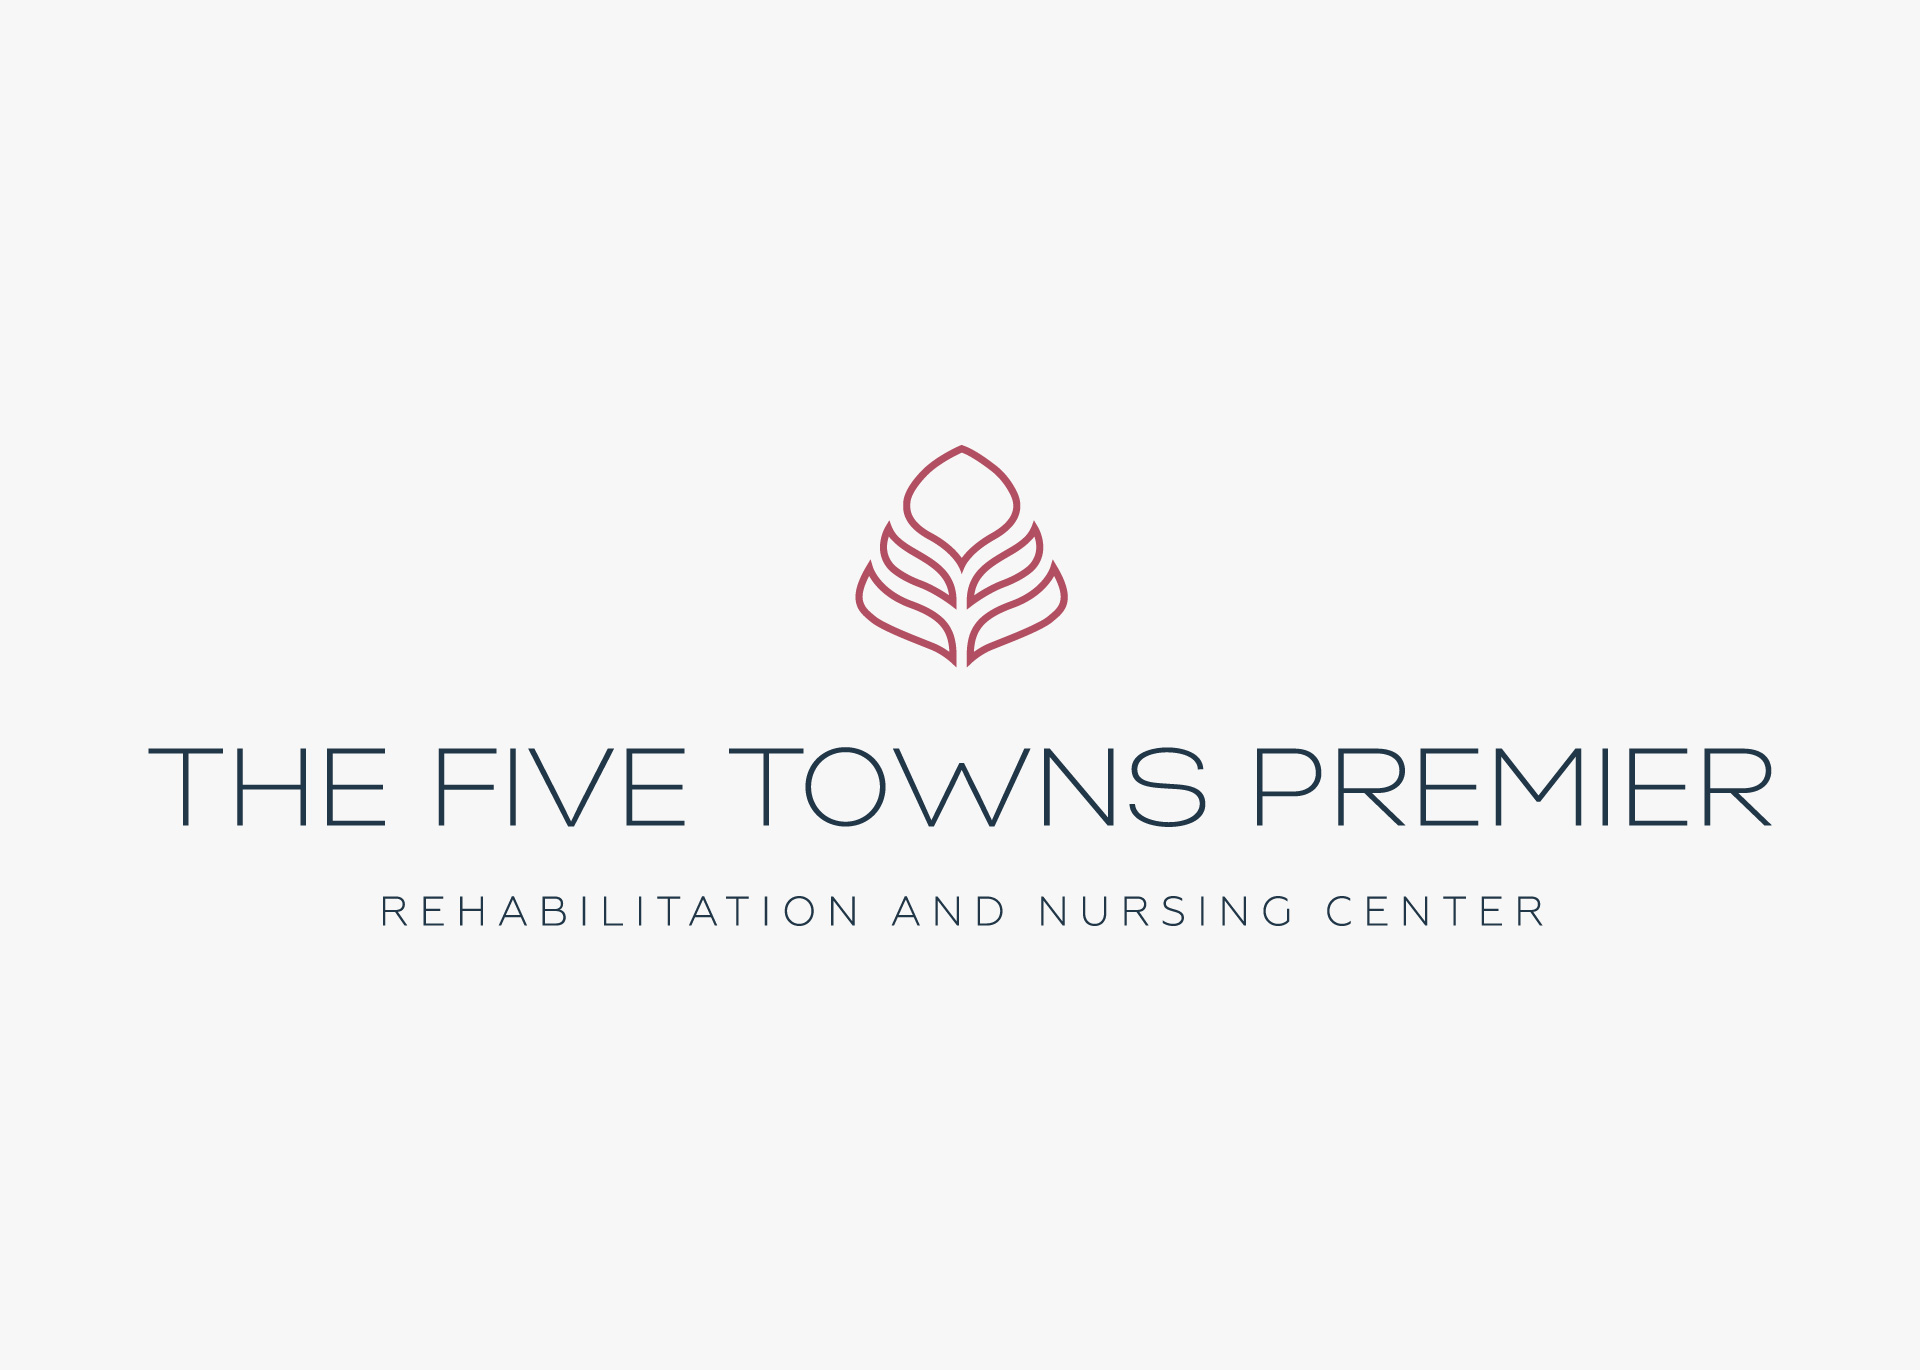 The Five Towns Premier for Rehabilitation and Nursing